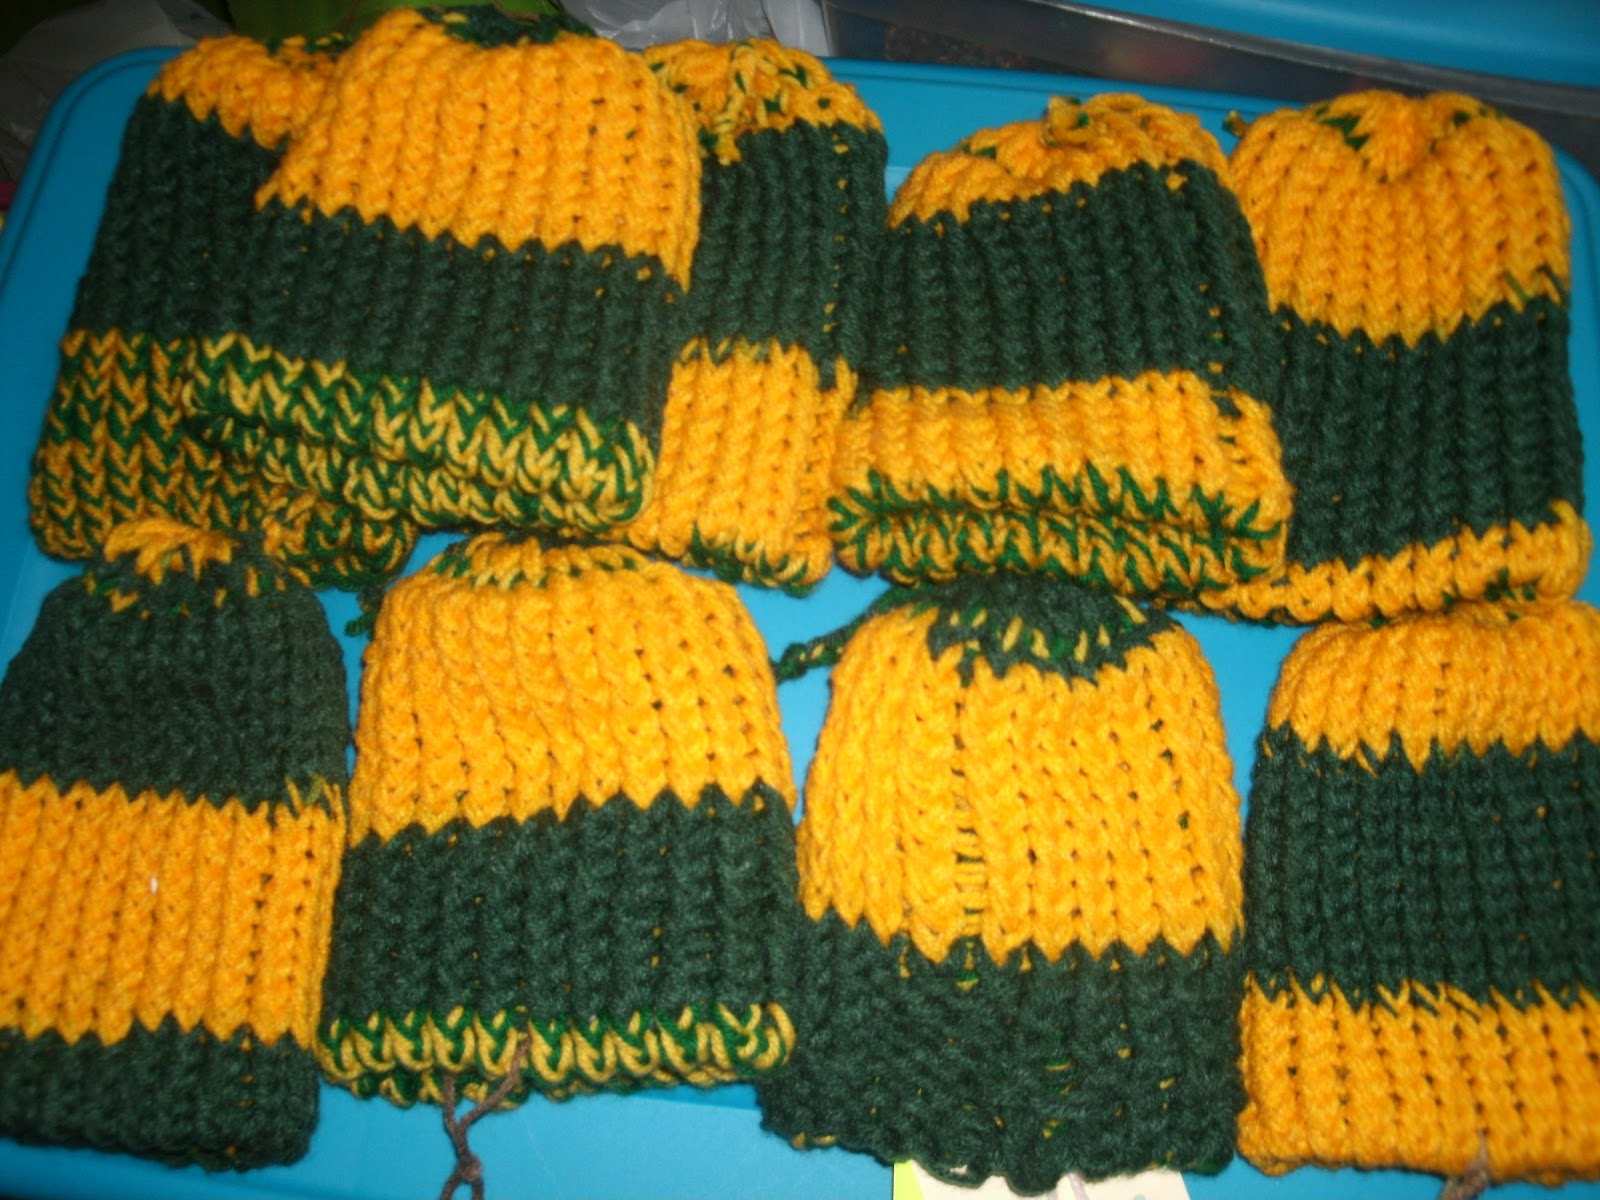 Iris Loom Knit Crochet For Poor People Green Bay Packers Color